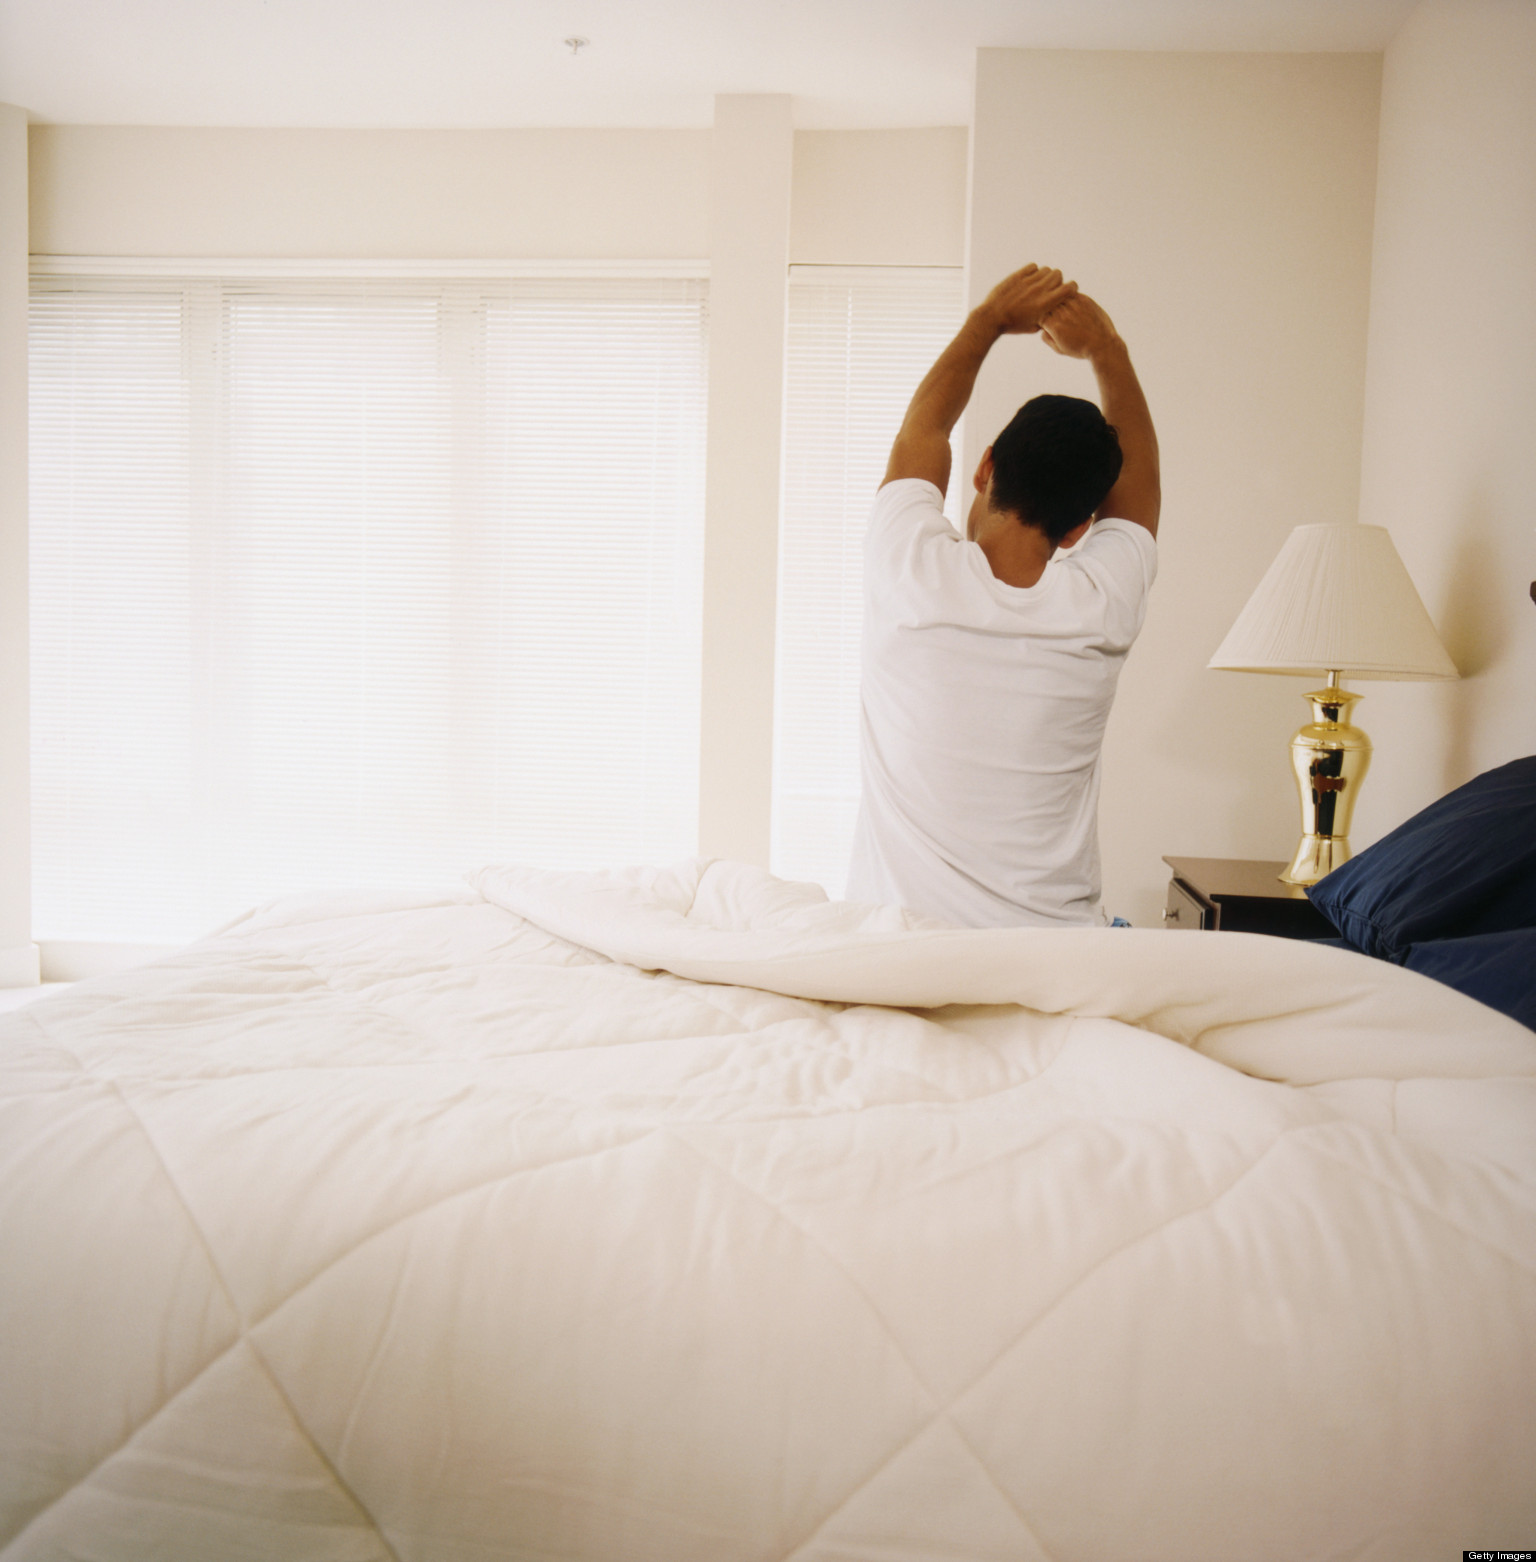 - Back Pain? 5 Stretches To Do Before Getting Out Of Bed HuffPost